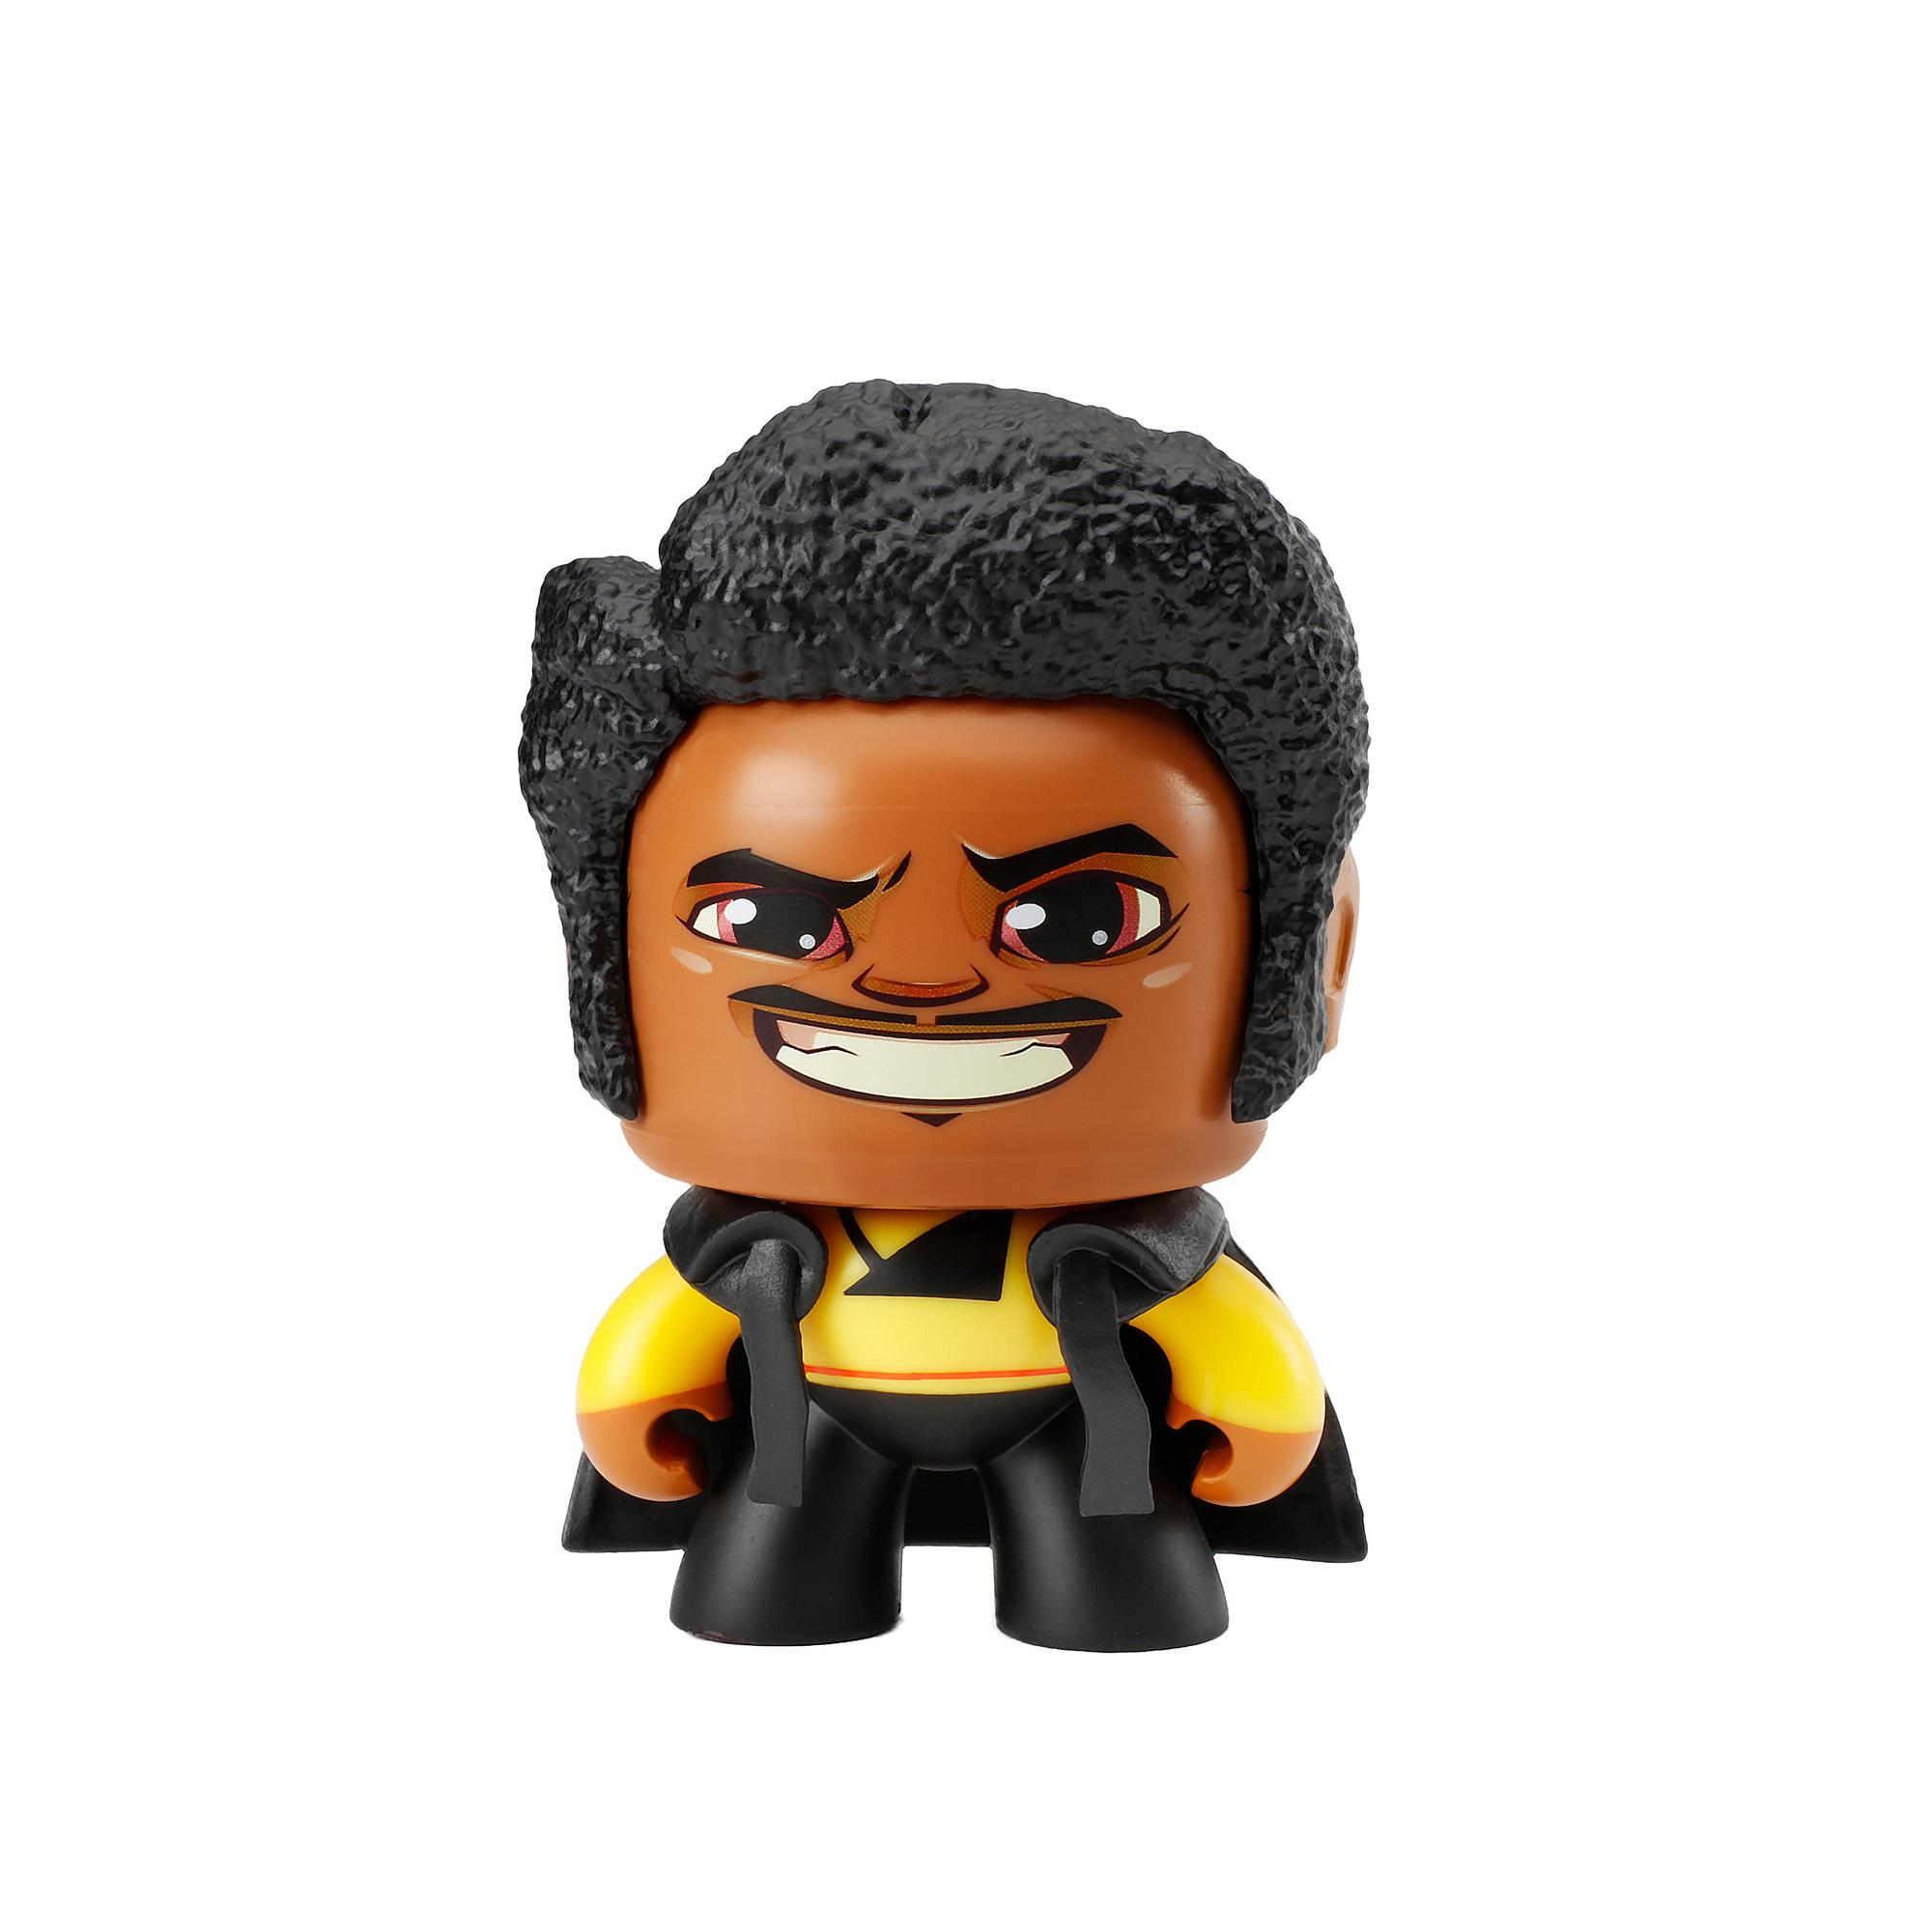 Mighty Muggs Star Wars - Lando Calrissian